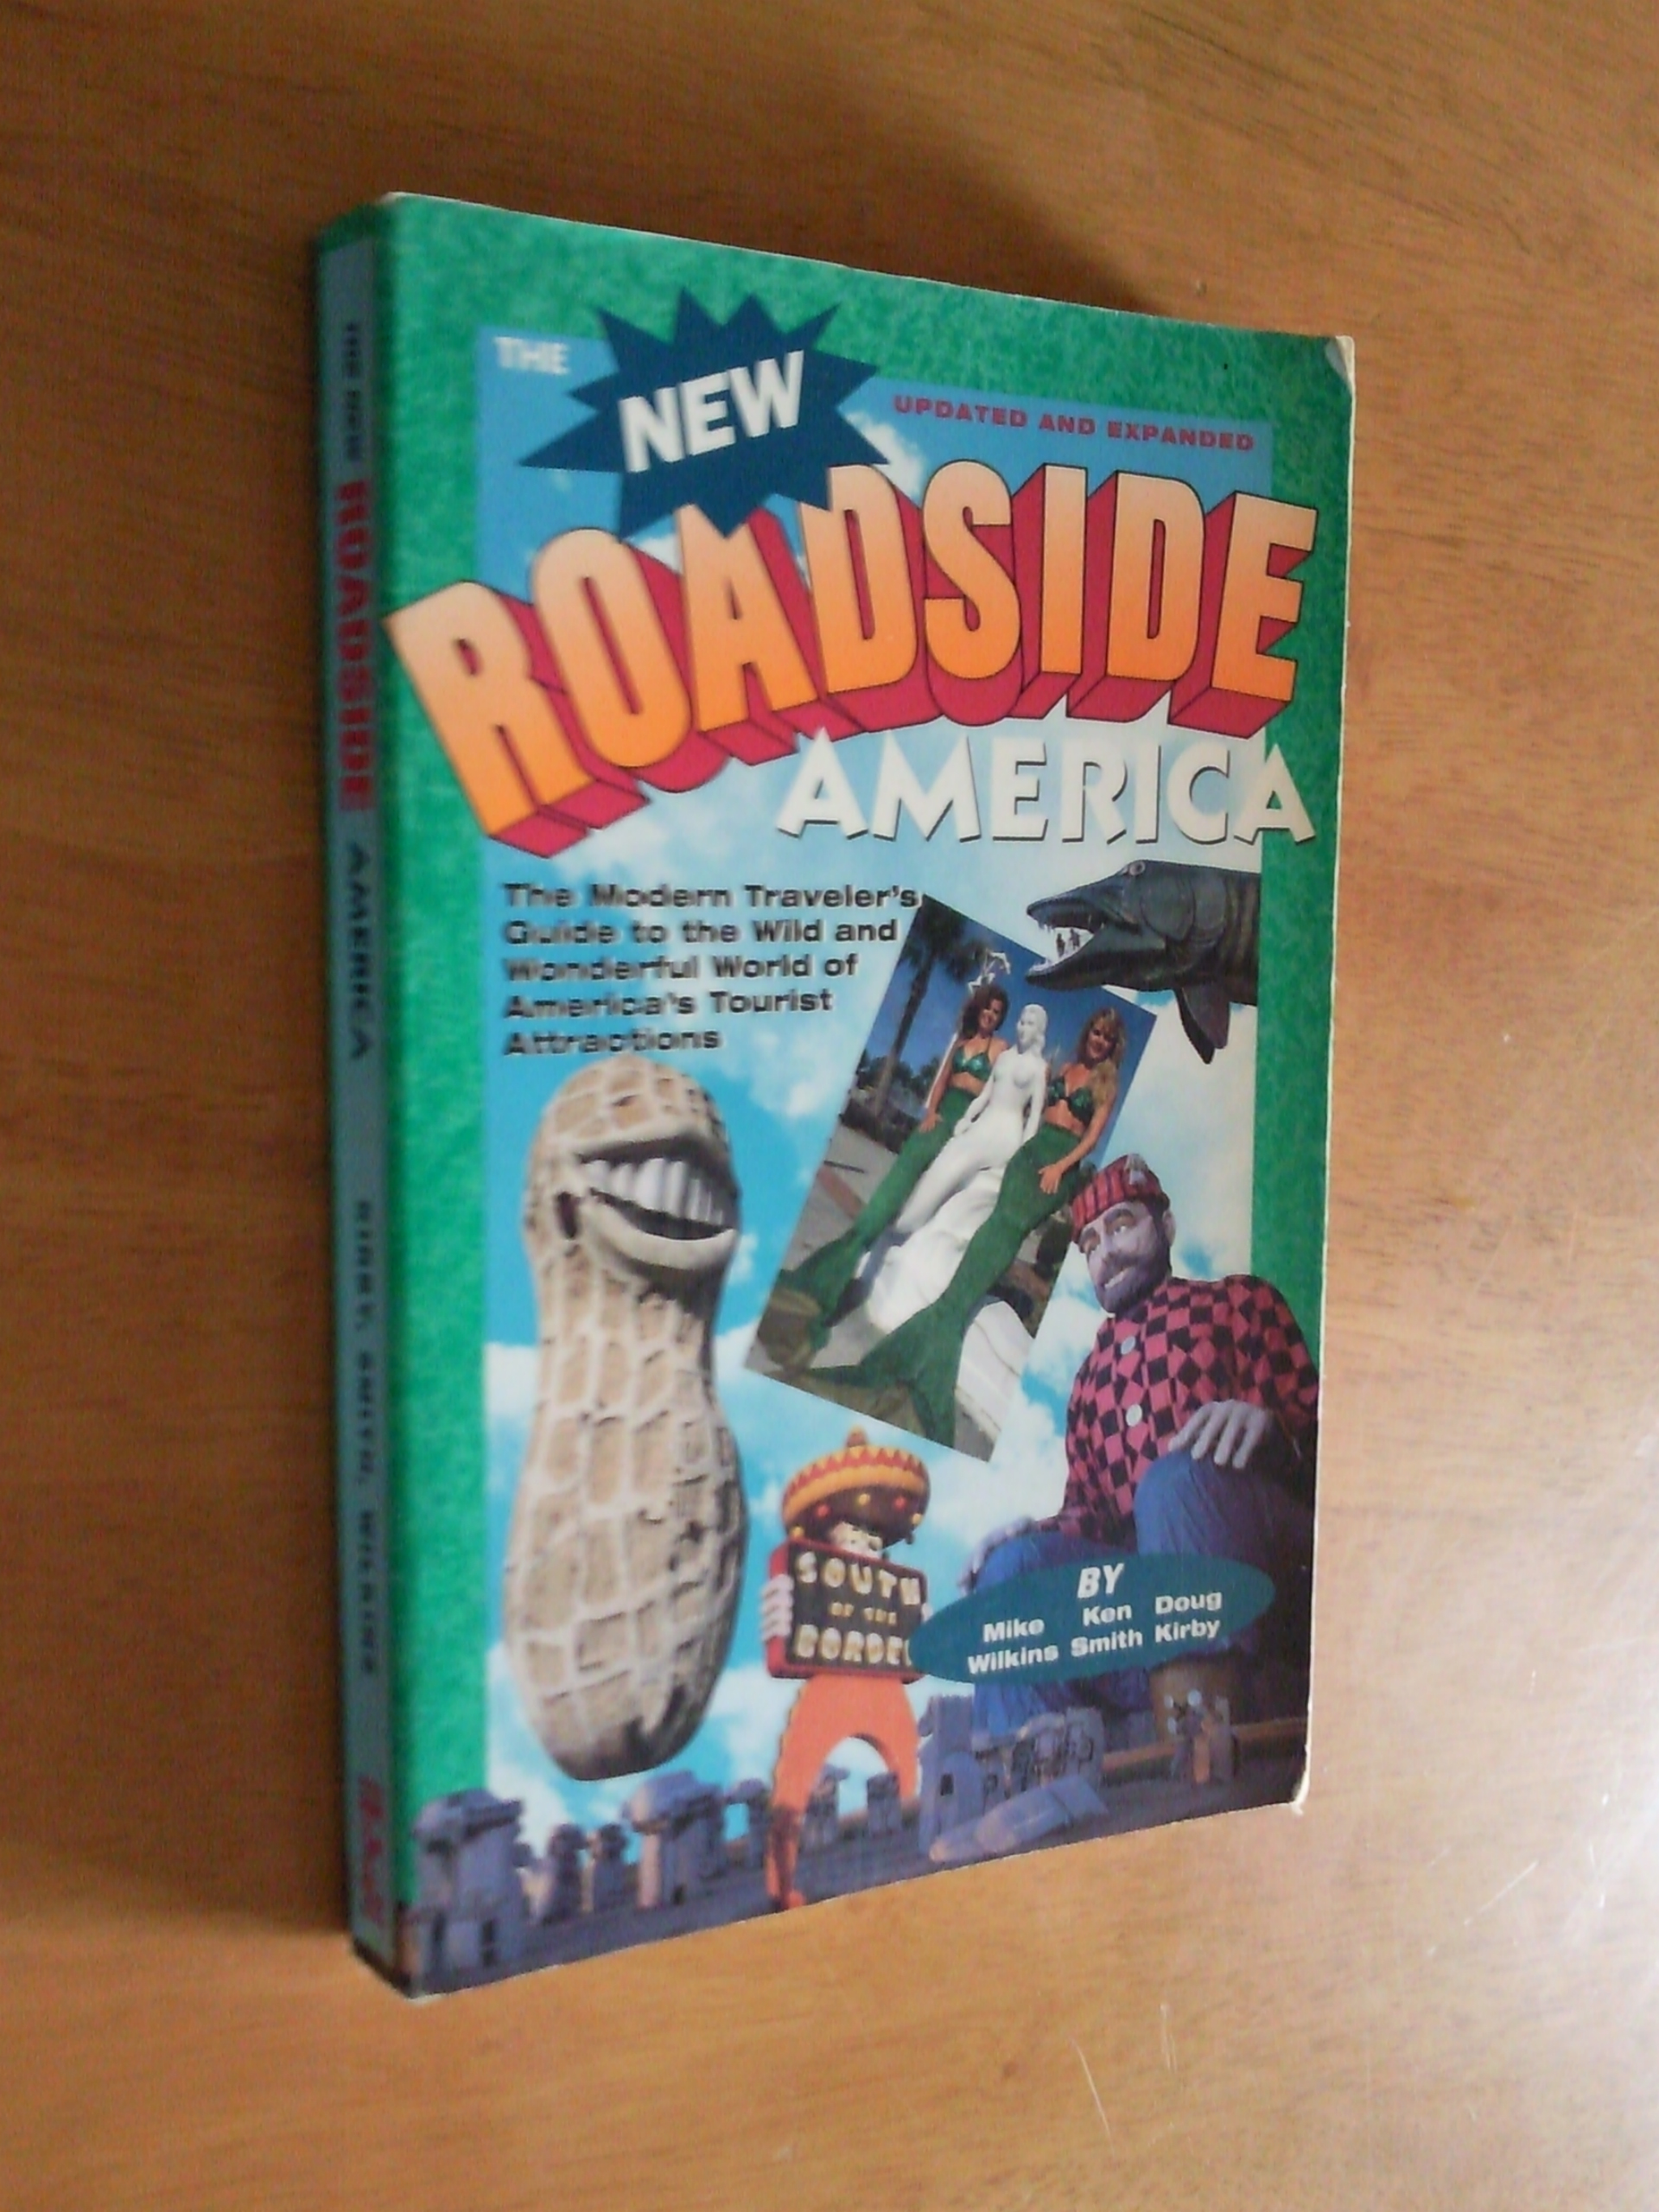 FOR SALE: The New Roadside America